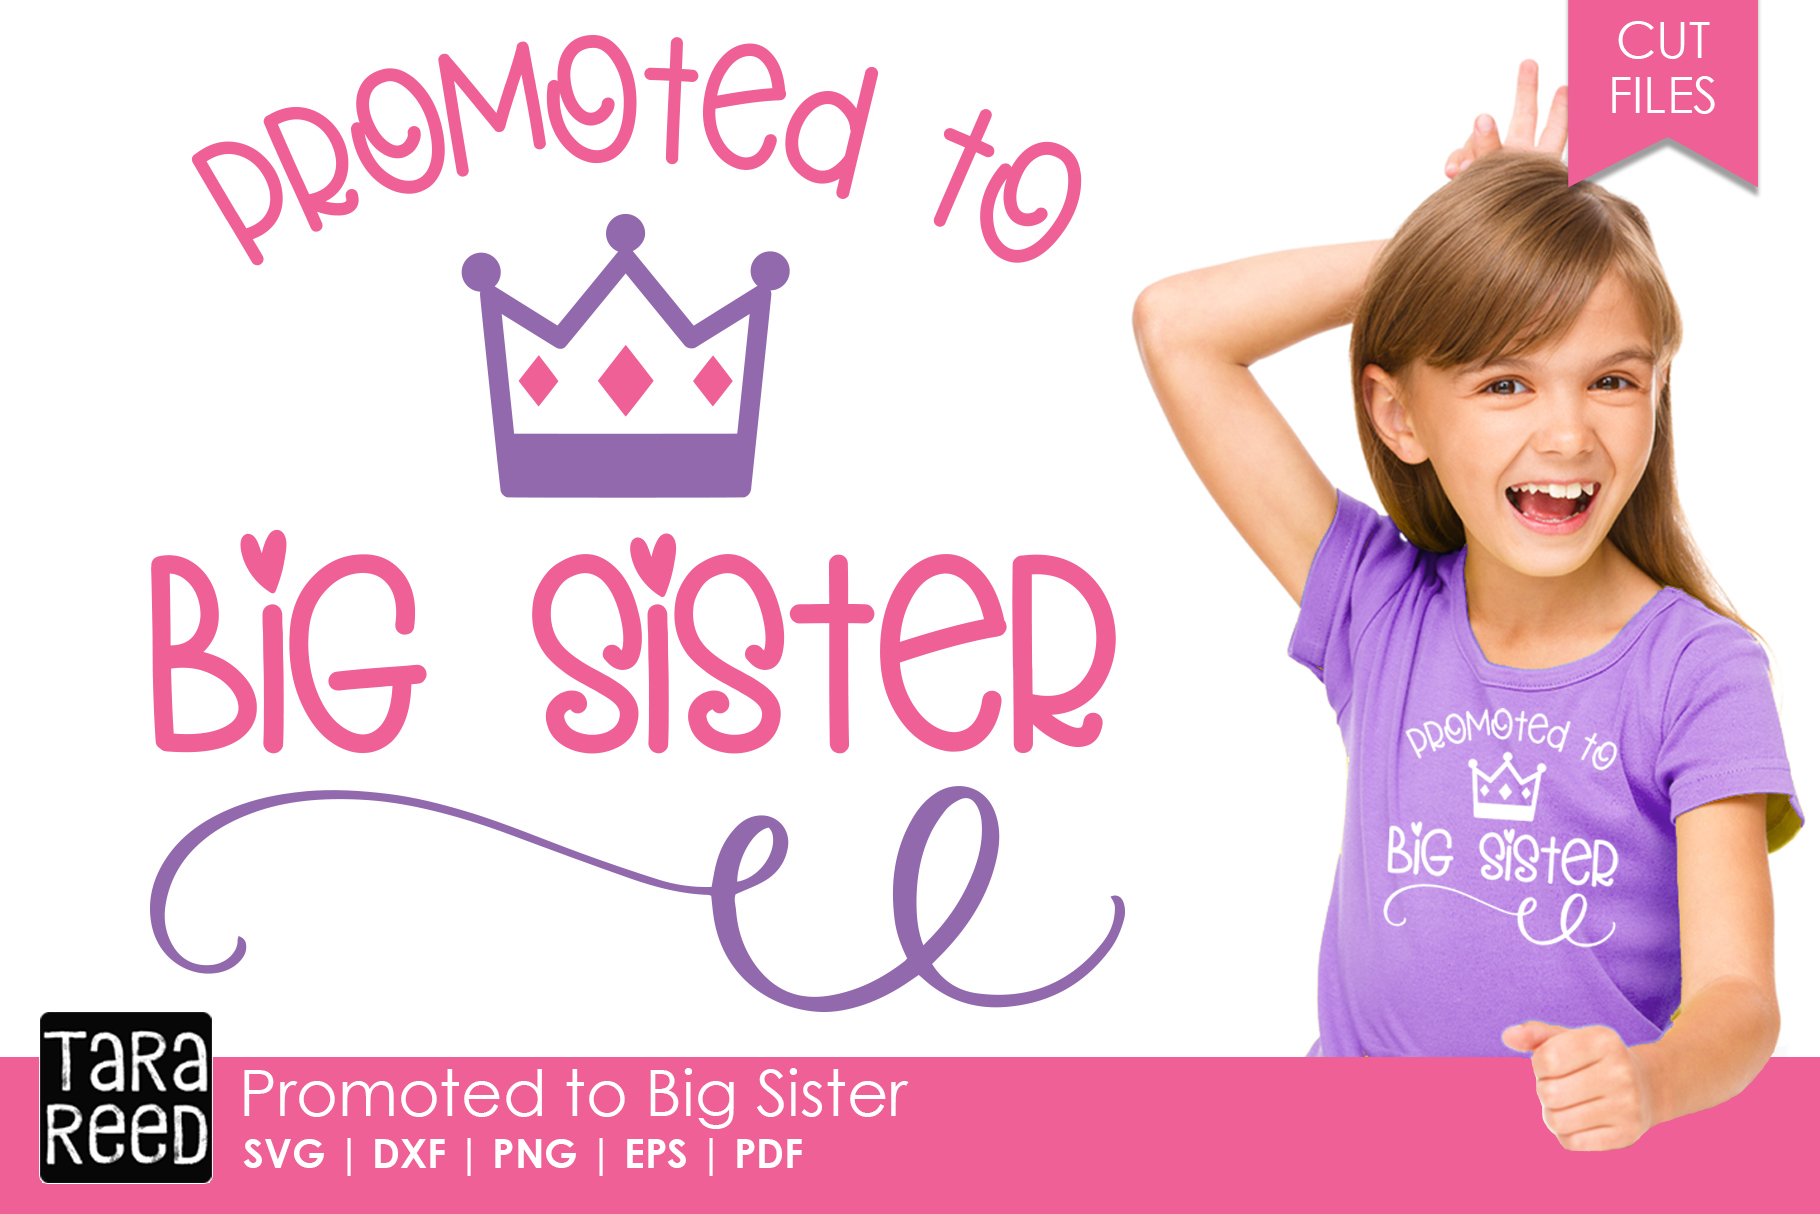 Promoted to Big Sister - Family SVG and Cut Files example image 1